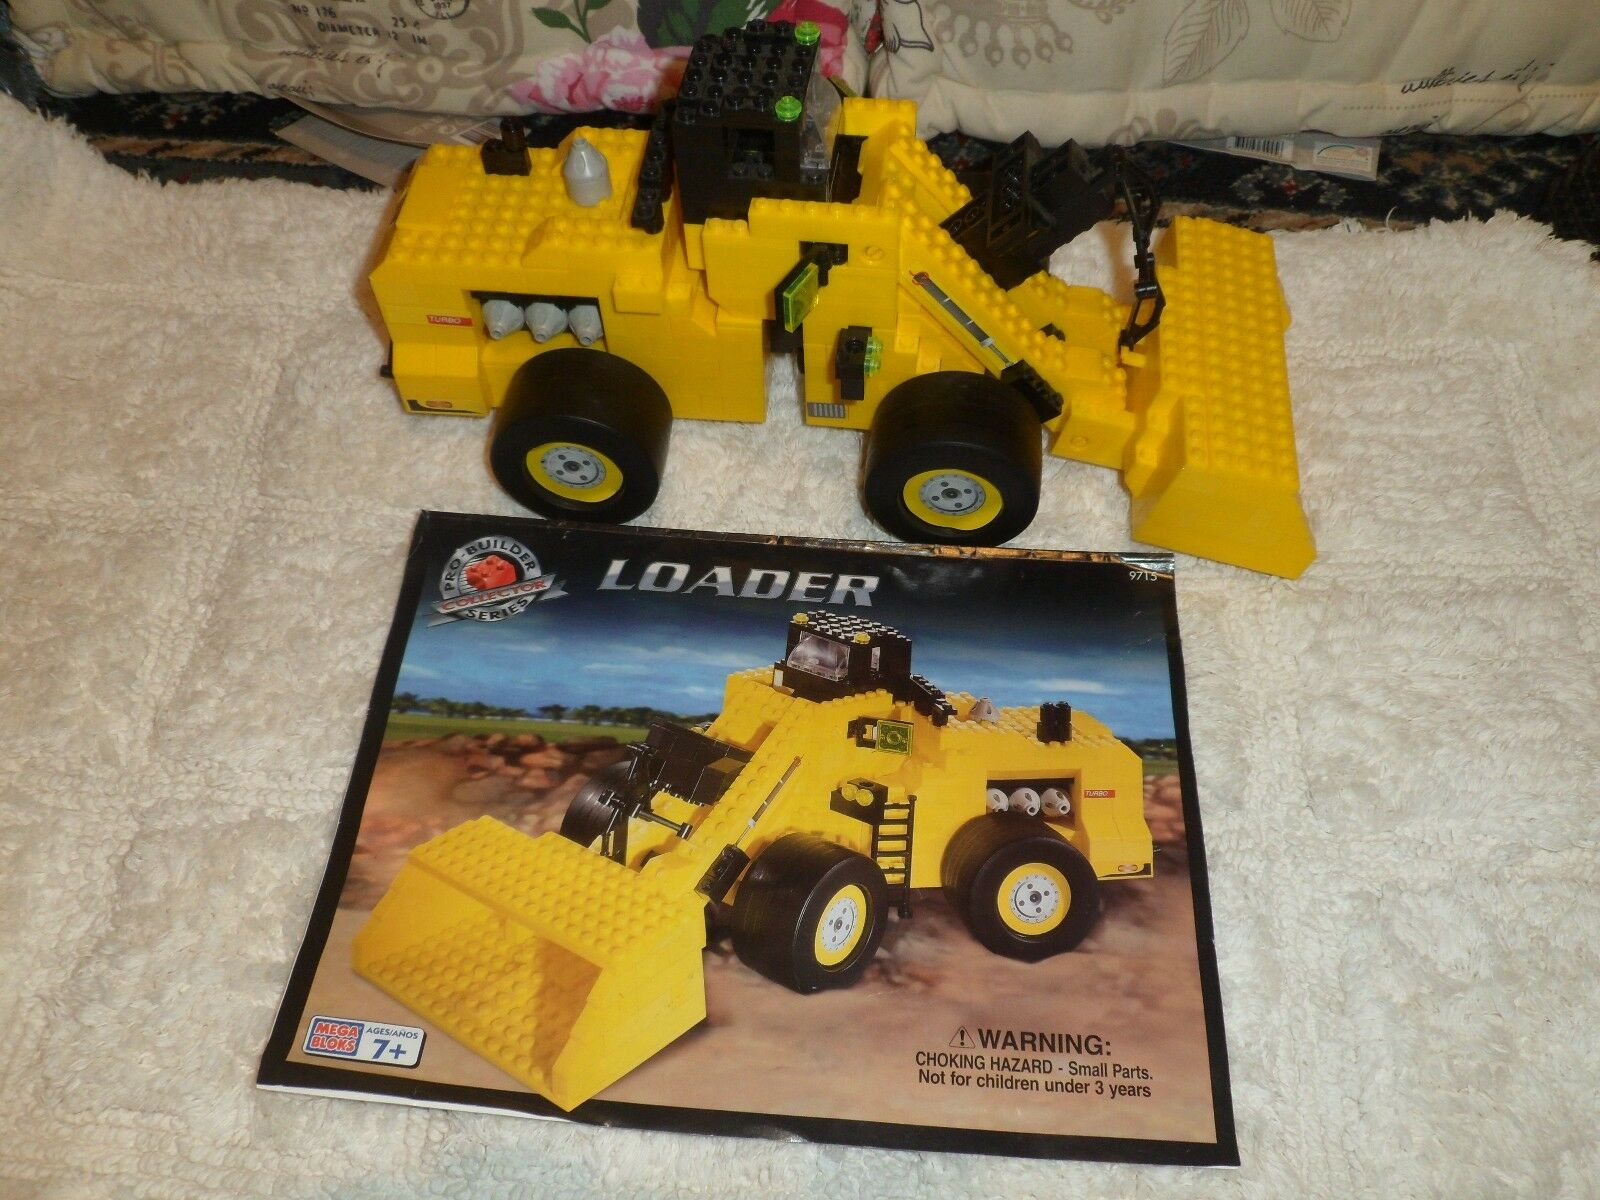 Rare, MEGA BLOKS PRO-BUILDER COLLECTOR SERIES - LOADER, 9715, from 2000, 7+